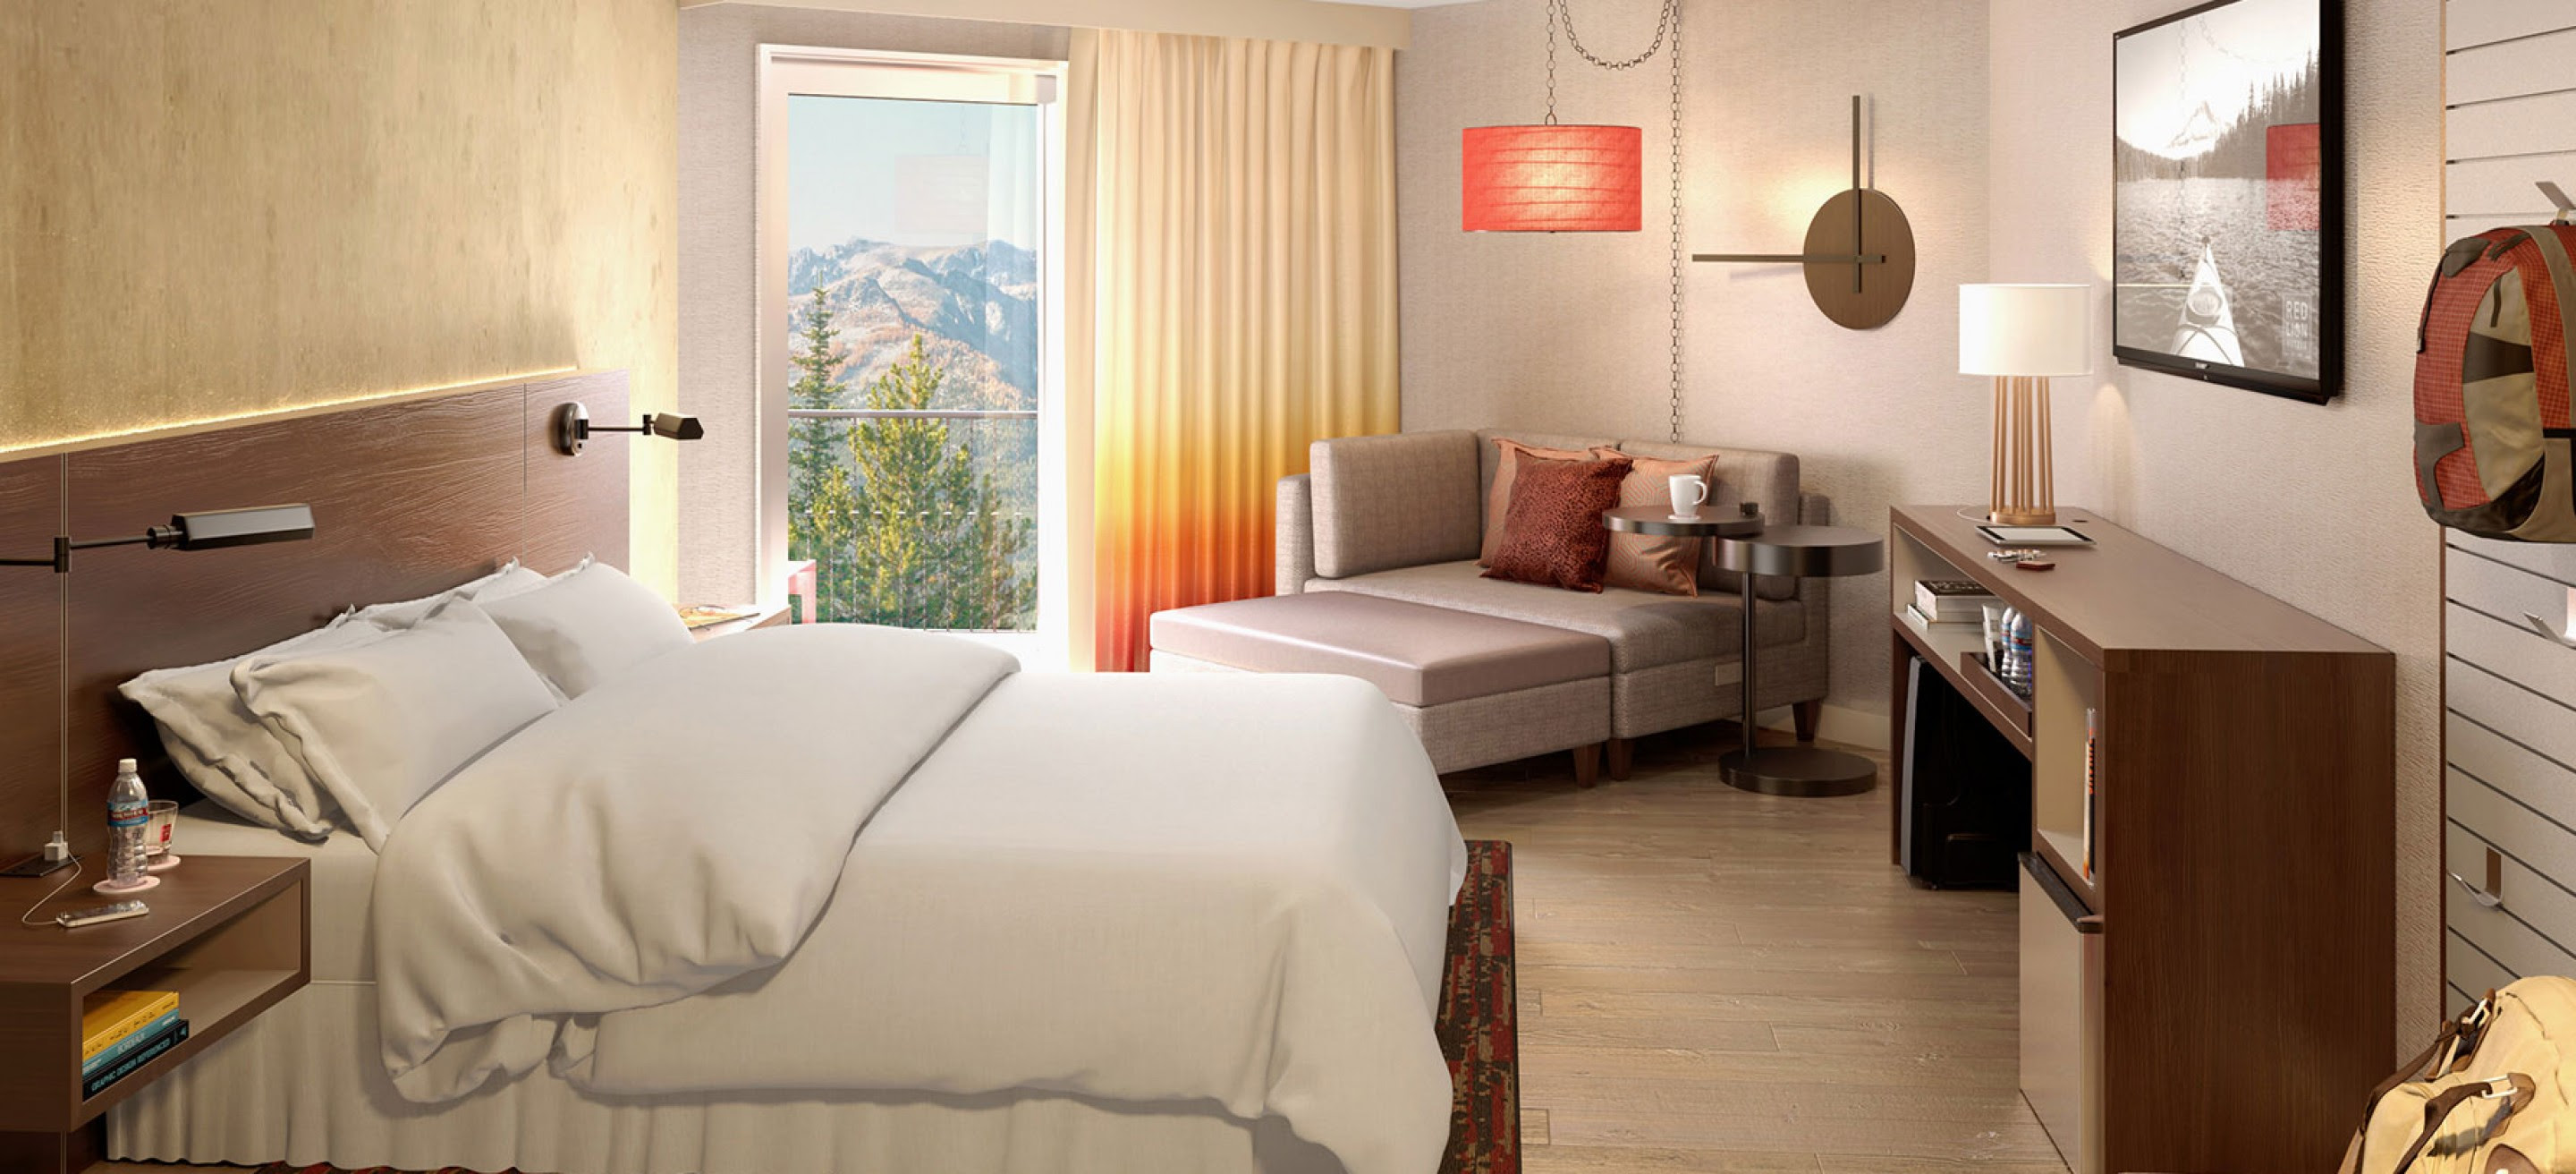 Image result for red lion hotel guestroom interior